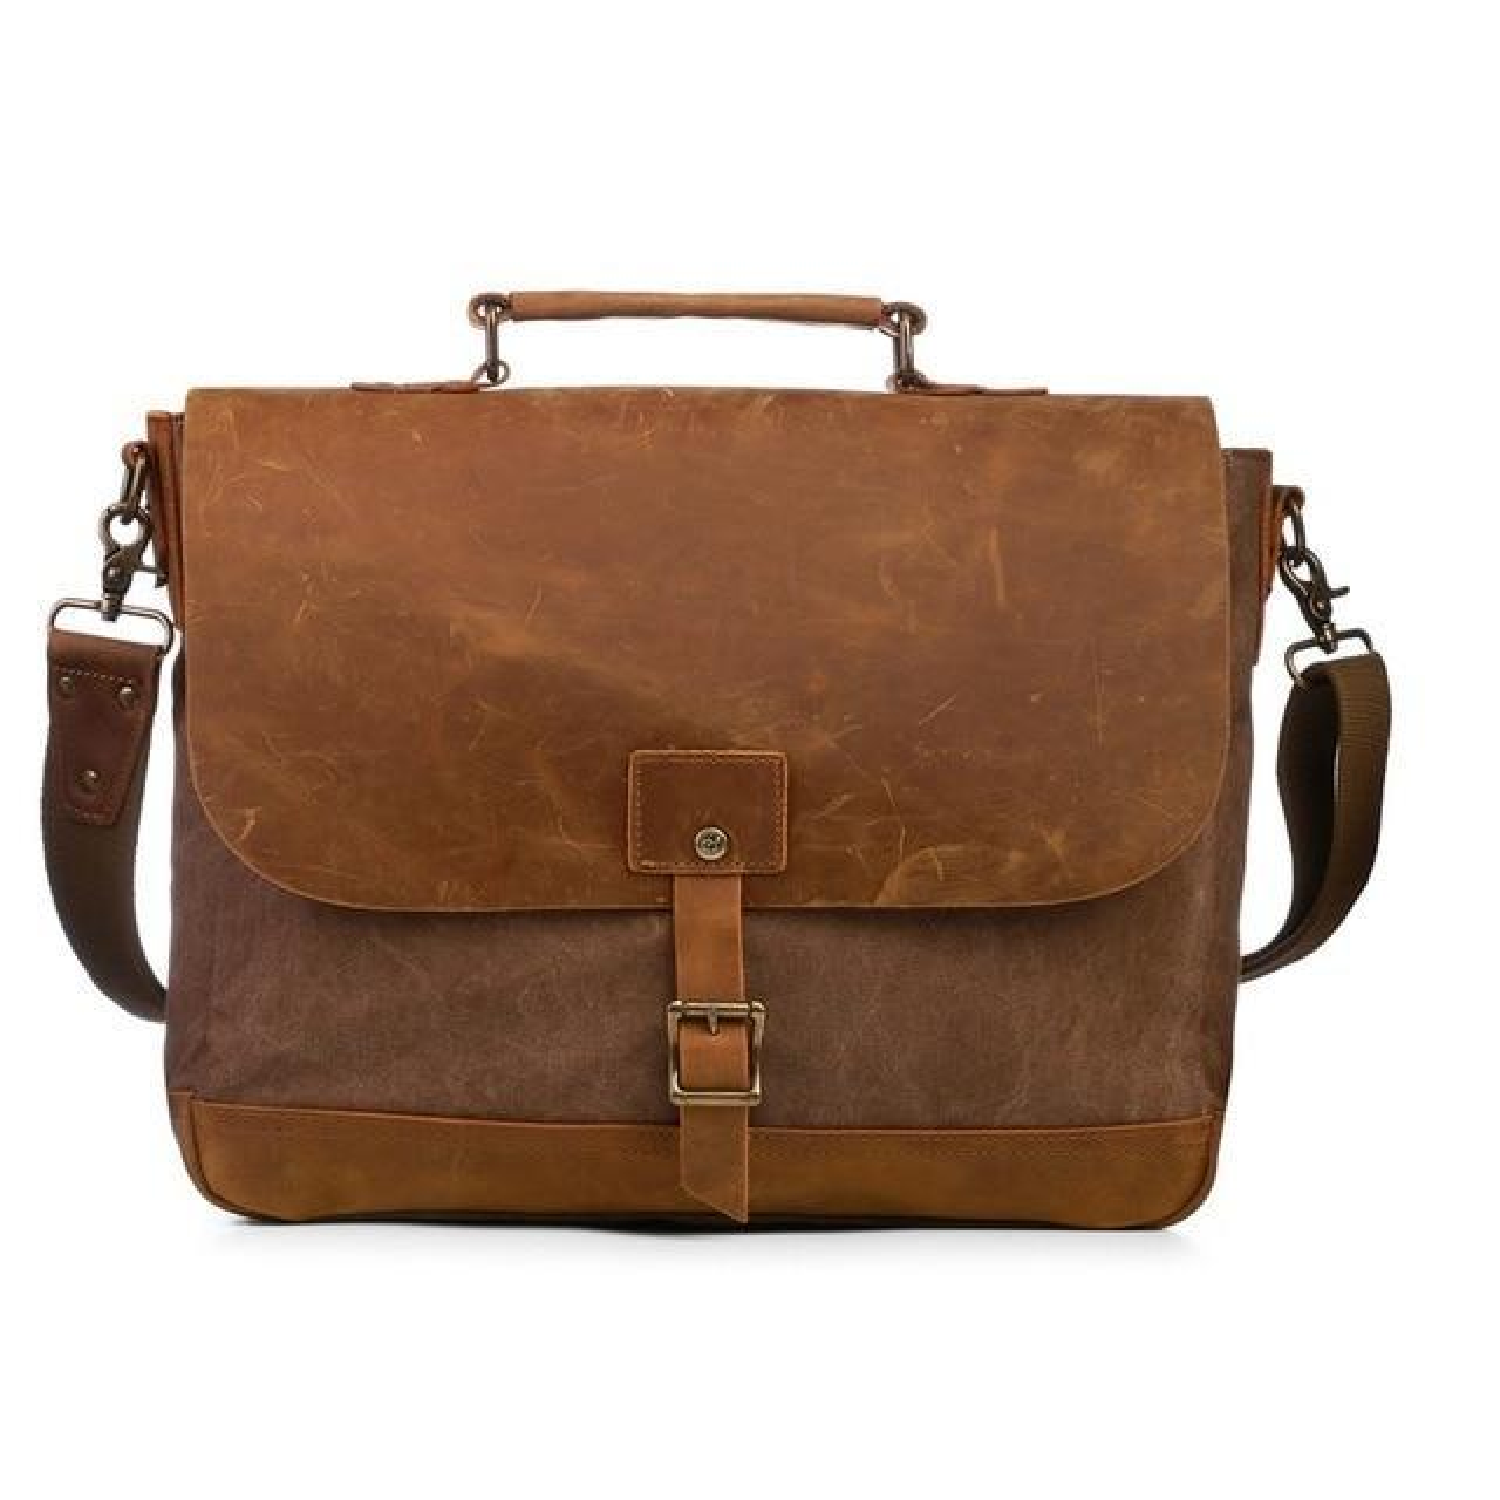 437e9ddc80 Men Canvas Leather Crossbody Bag Men Vintage Messenger Bags Large Shoulder  Bag - Thumbnail 1 ...